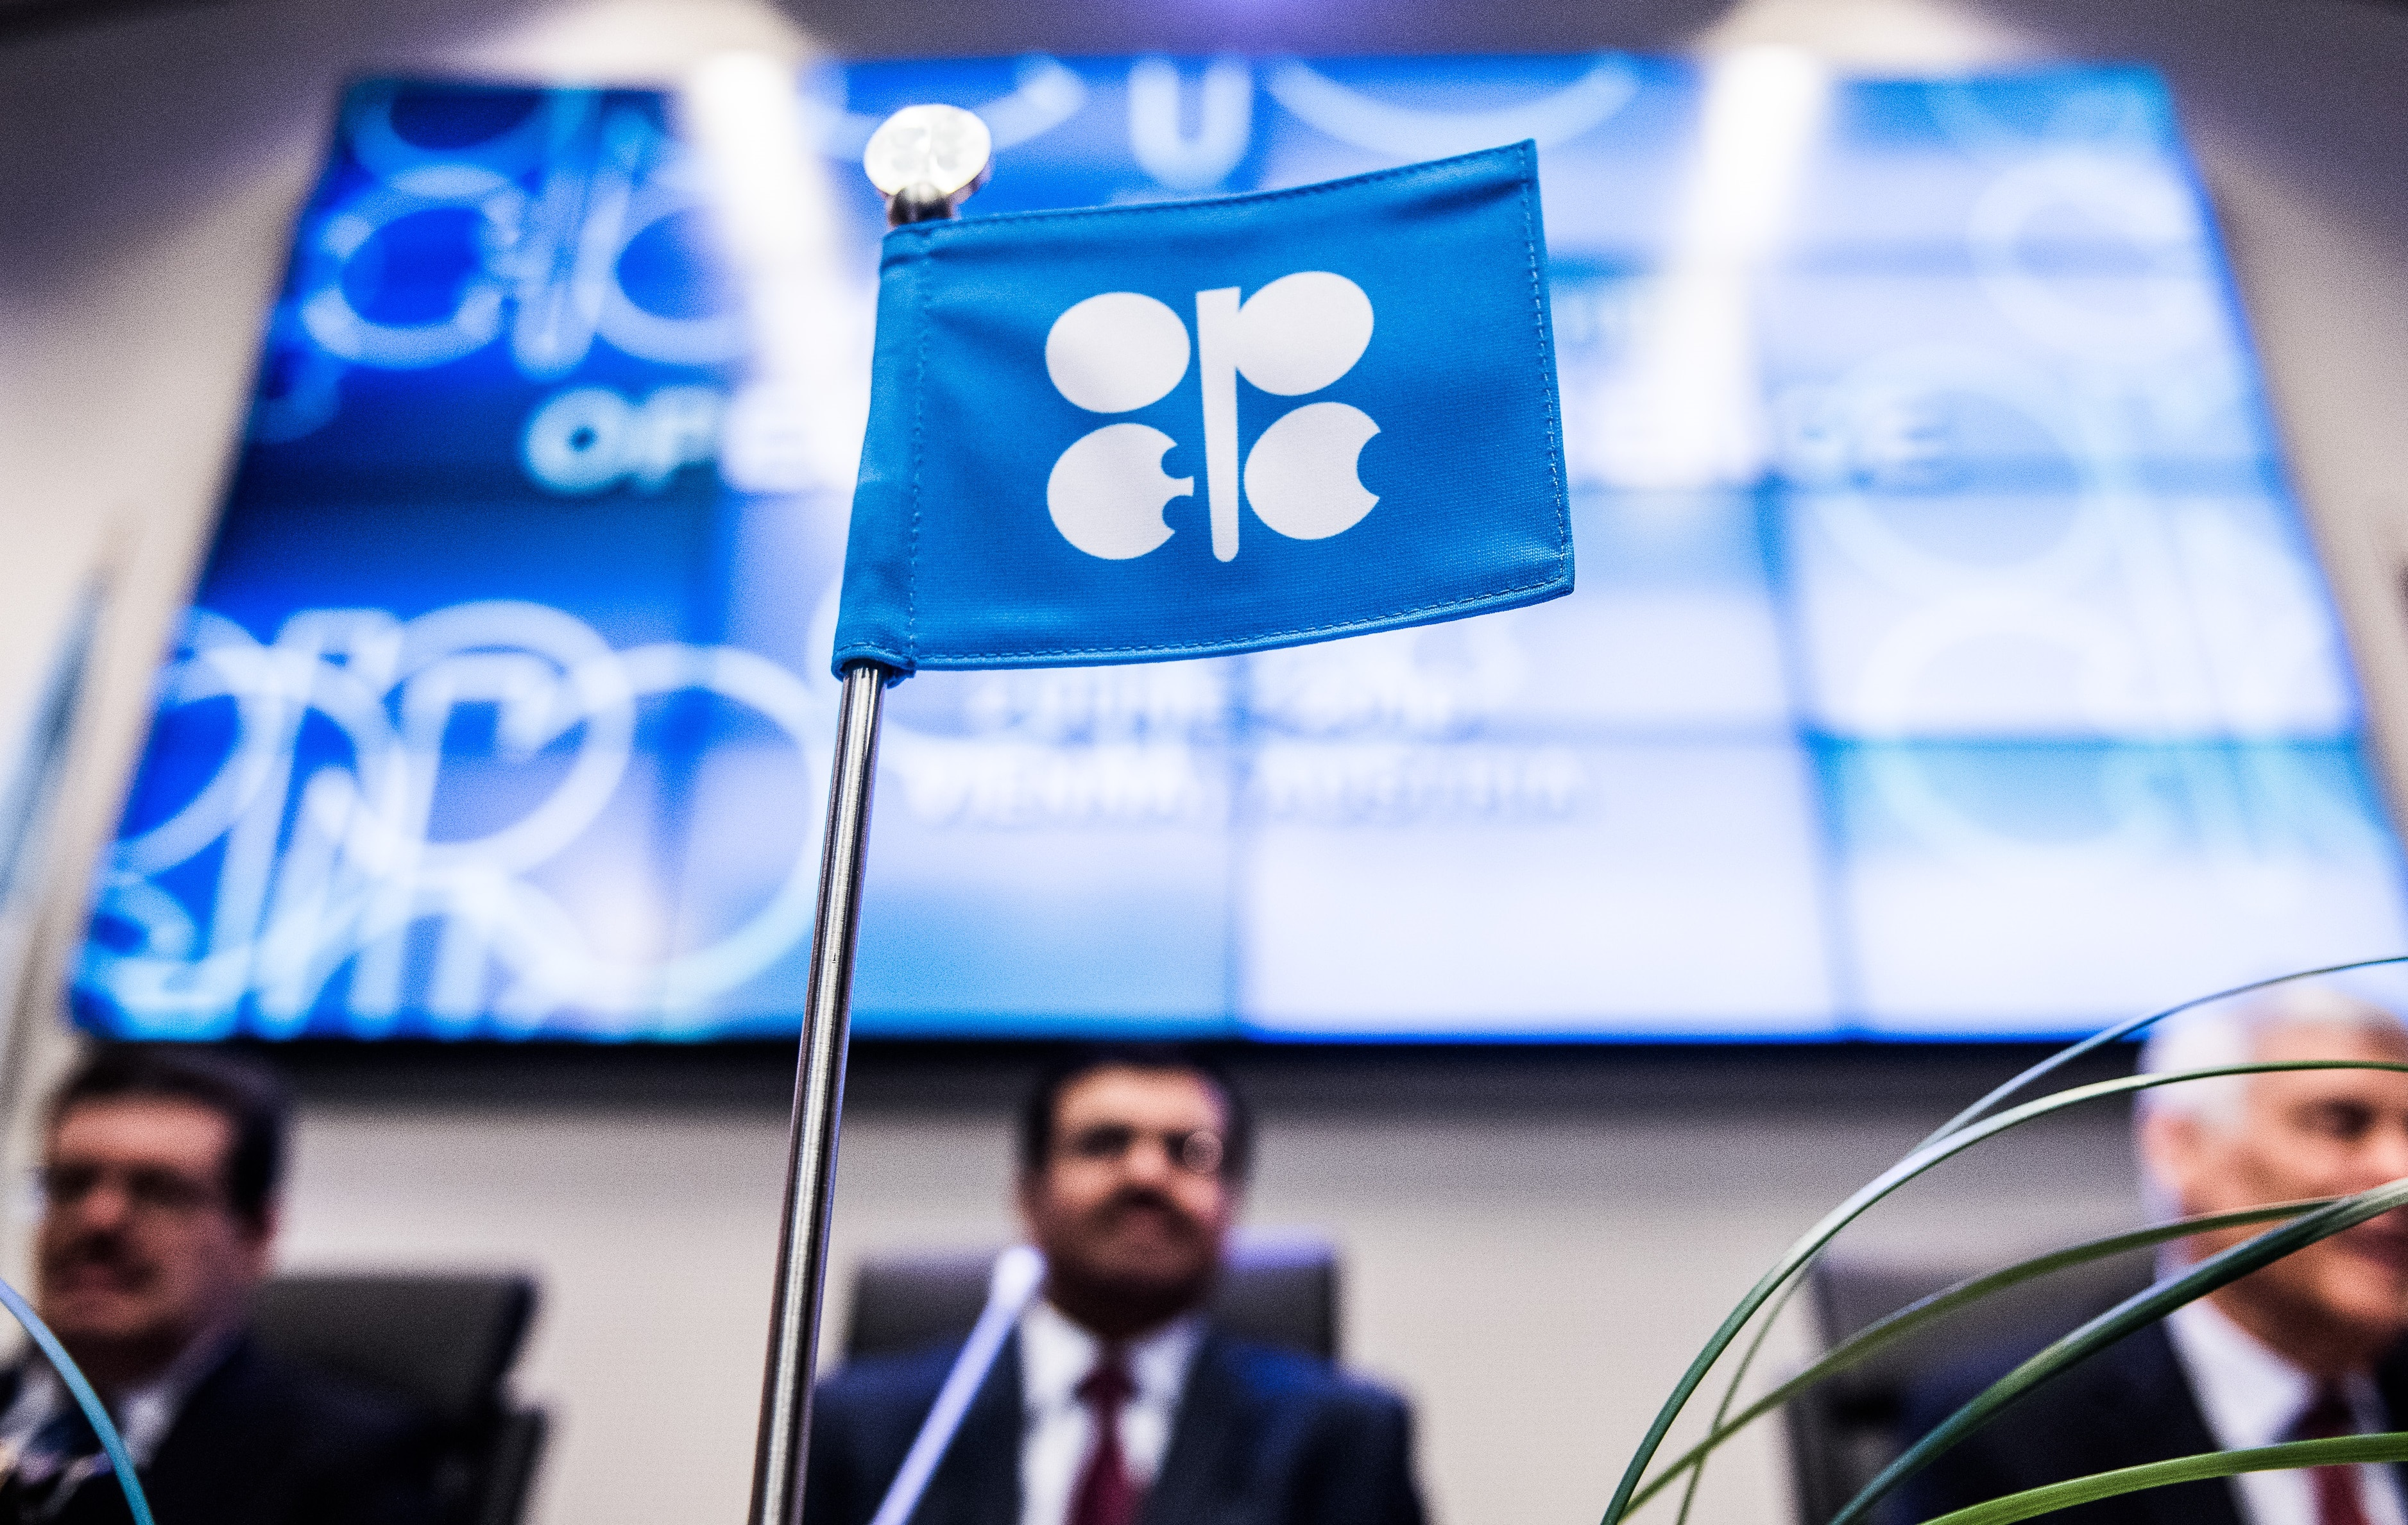 OPEC+ may abandon quota deal at oil prices of over 70 USD per barrel